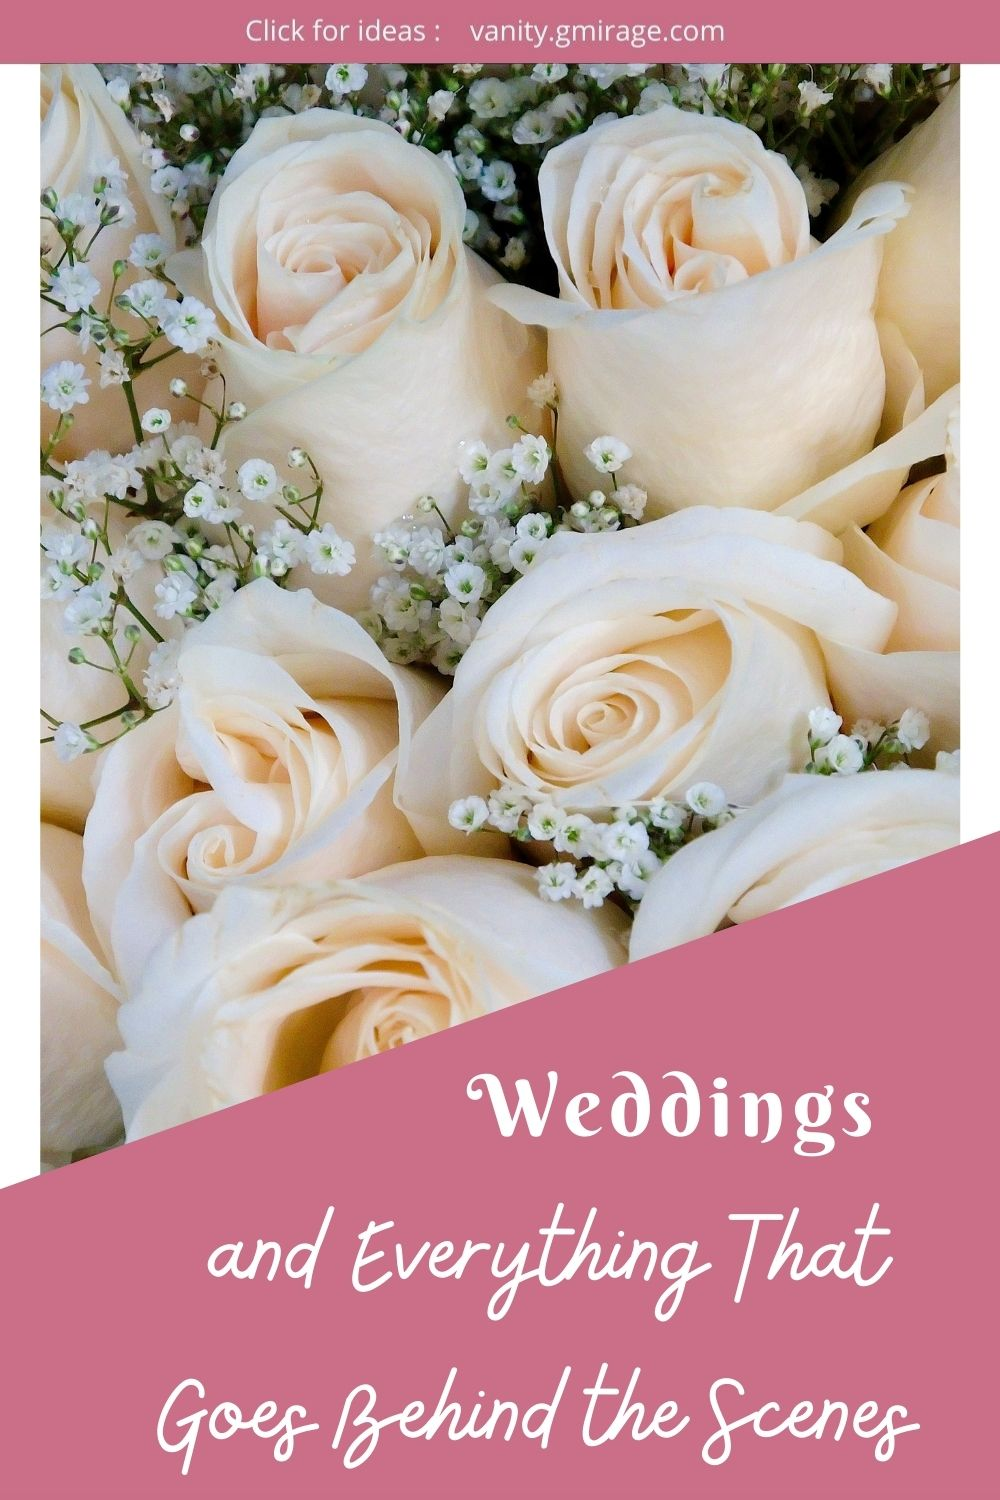 Weddings and Everything That Goes Behind the Scenes